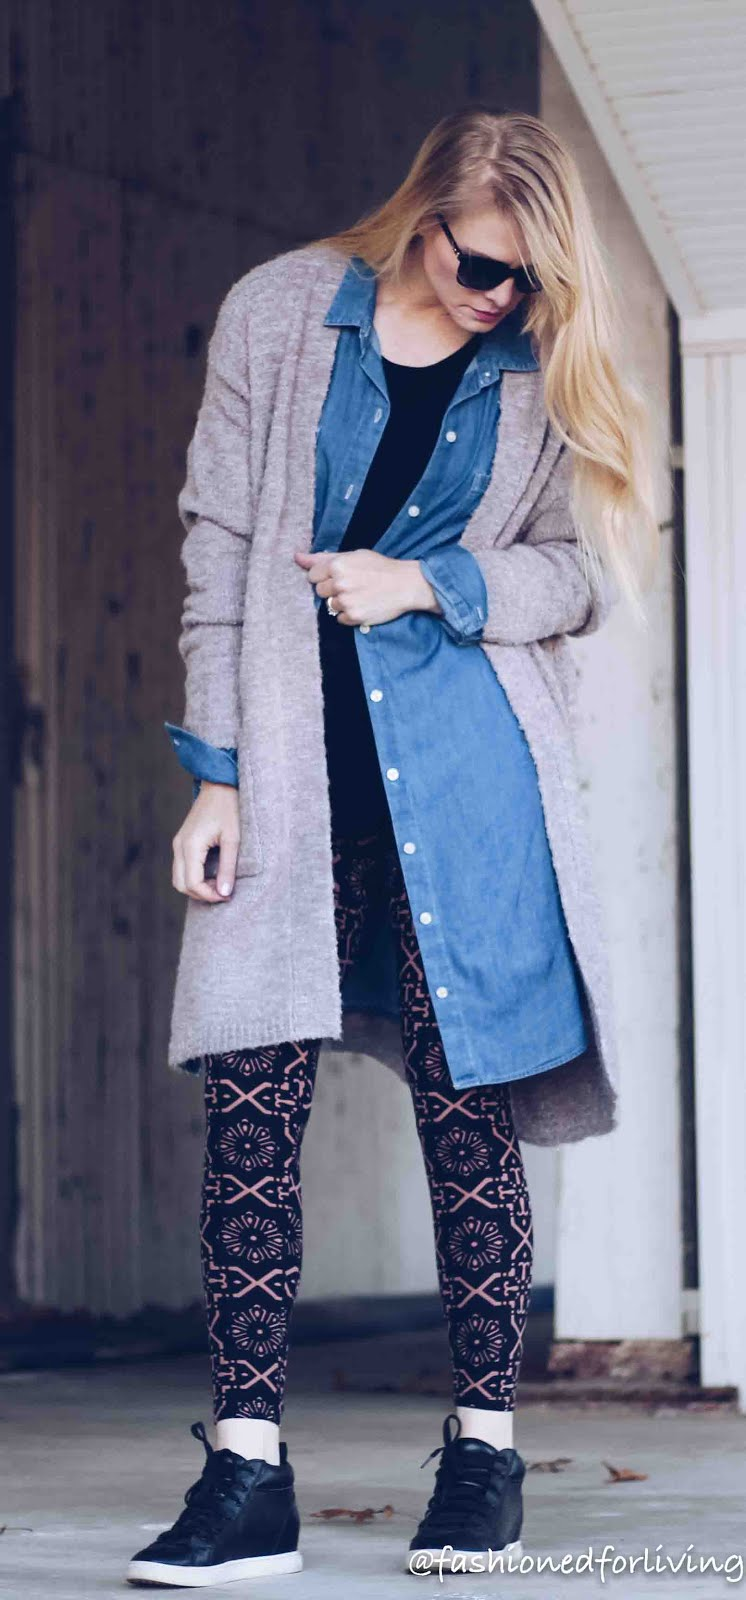 Fashioned For Living Leggings Outfit With Blush Cardigan